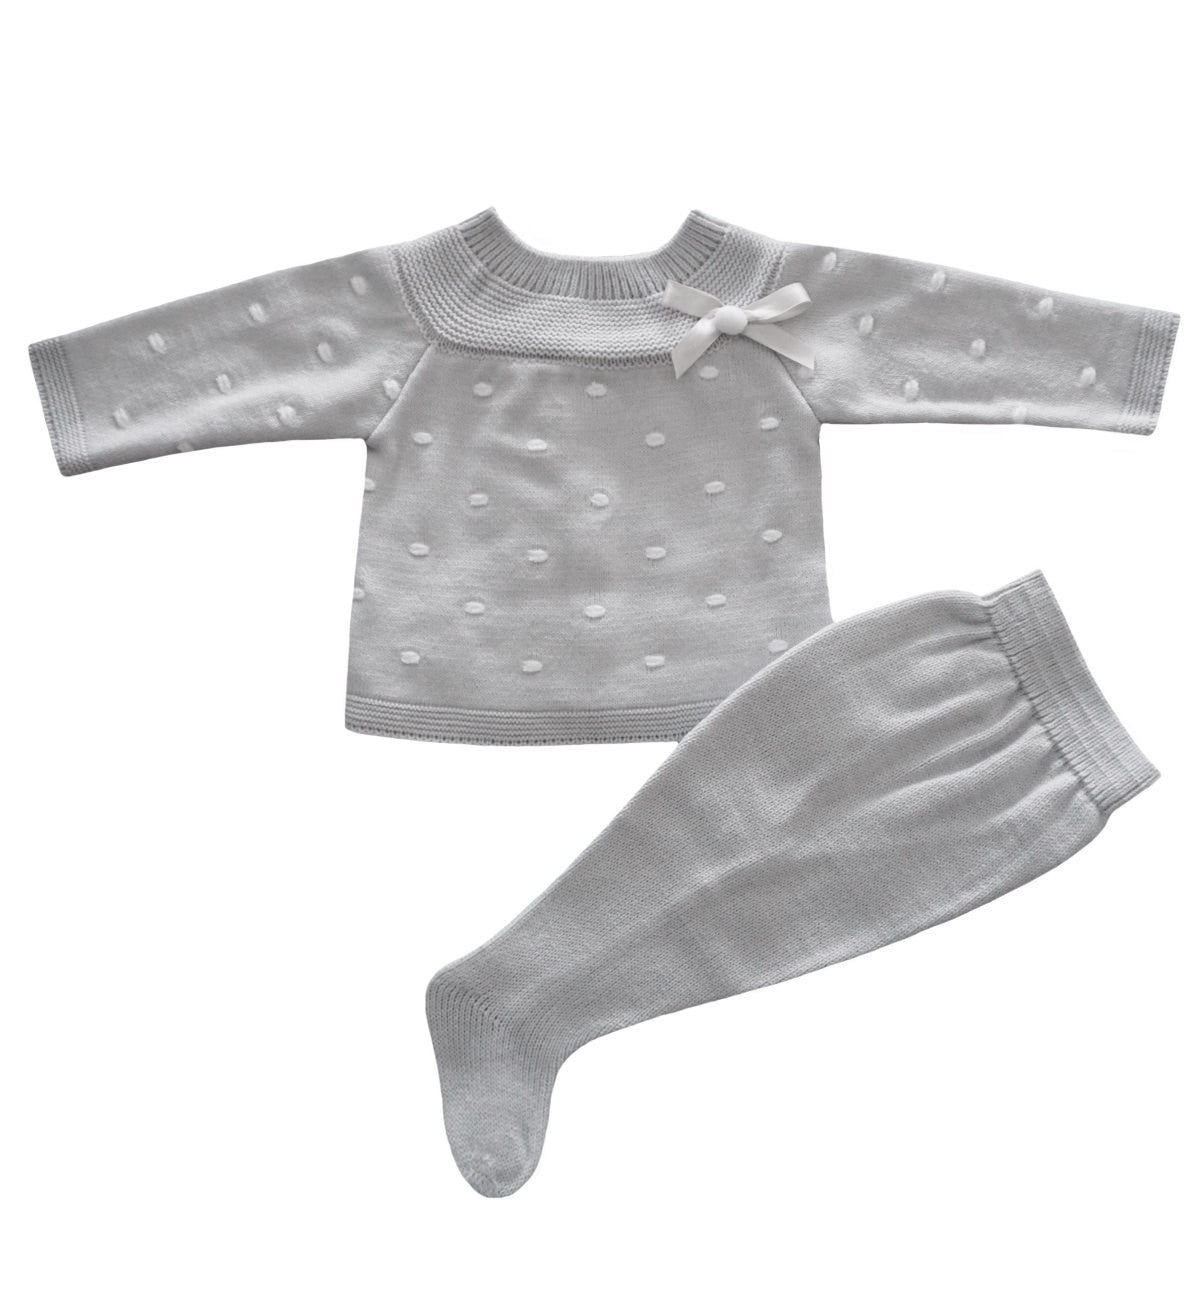 Spanish baby clothes | baby Knitted sets | Pearl grey knitted set |babymaC  - 1